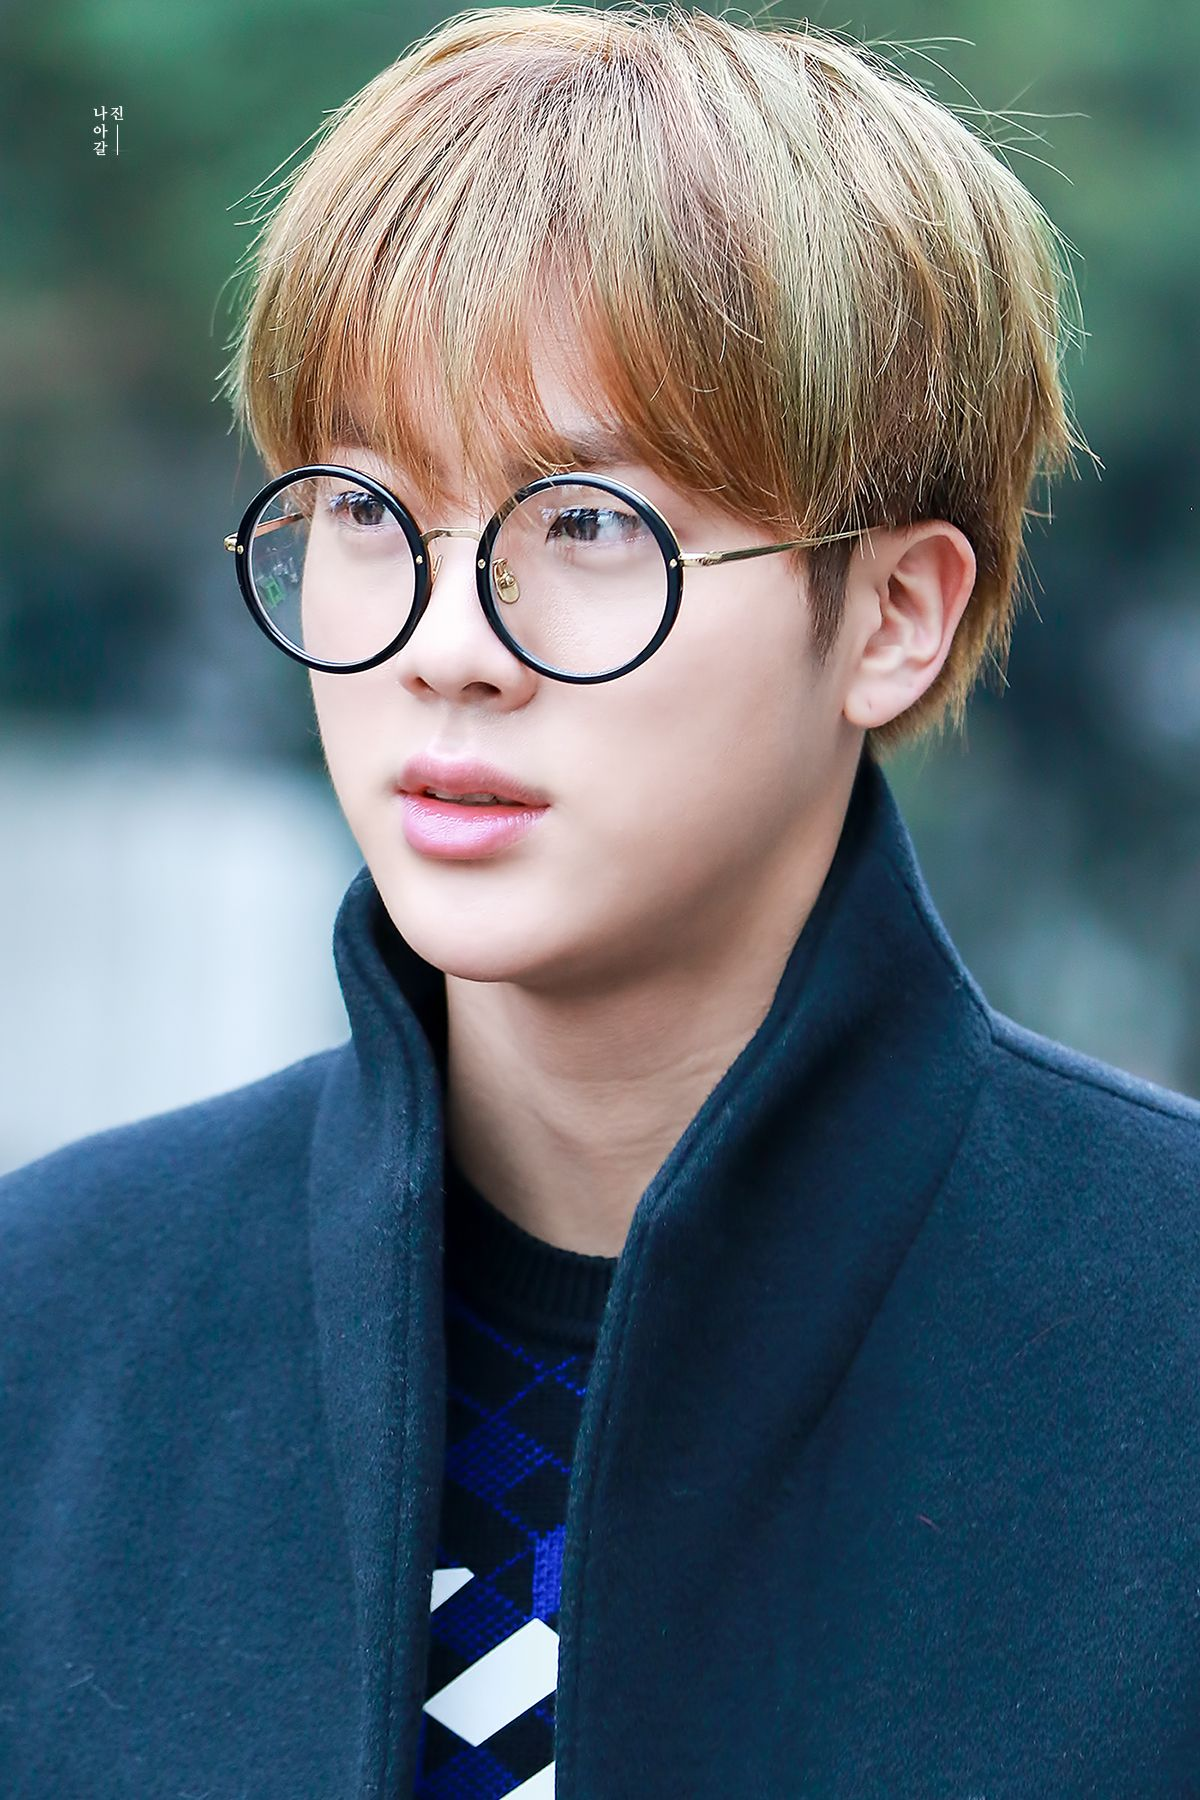 I M In Love With These Glasses Bangtan Boys 방탄소년단